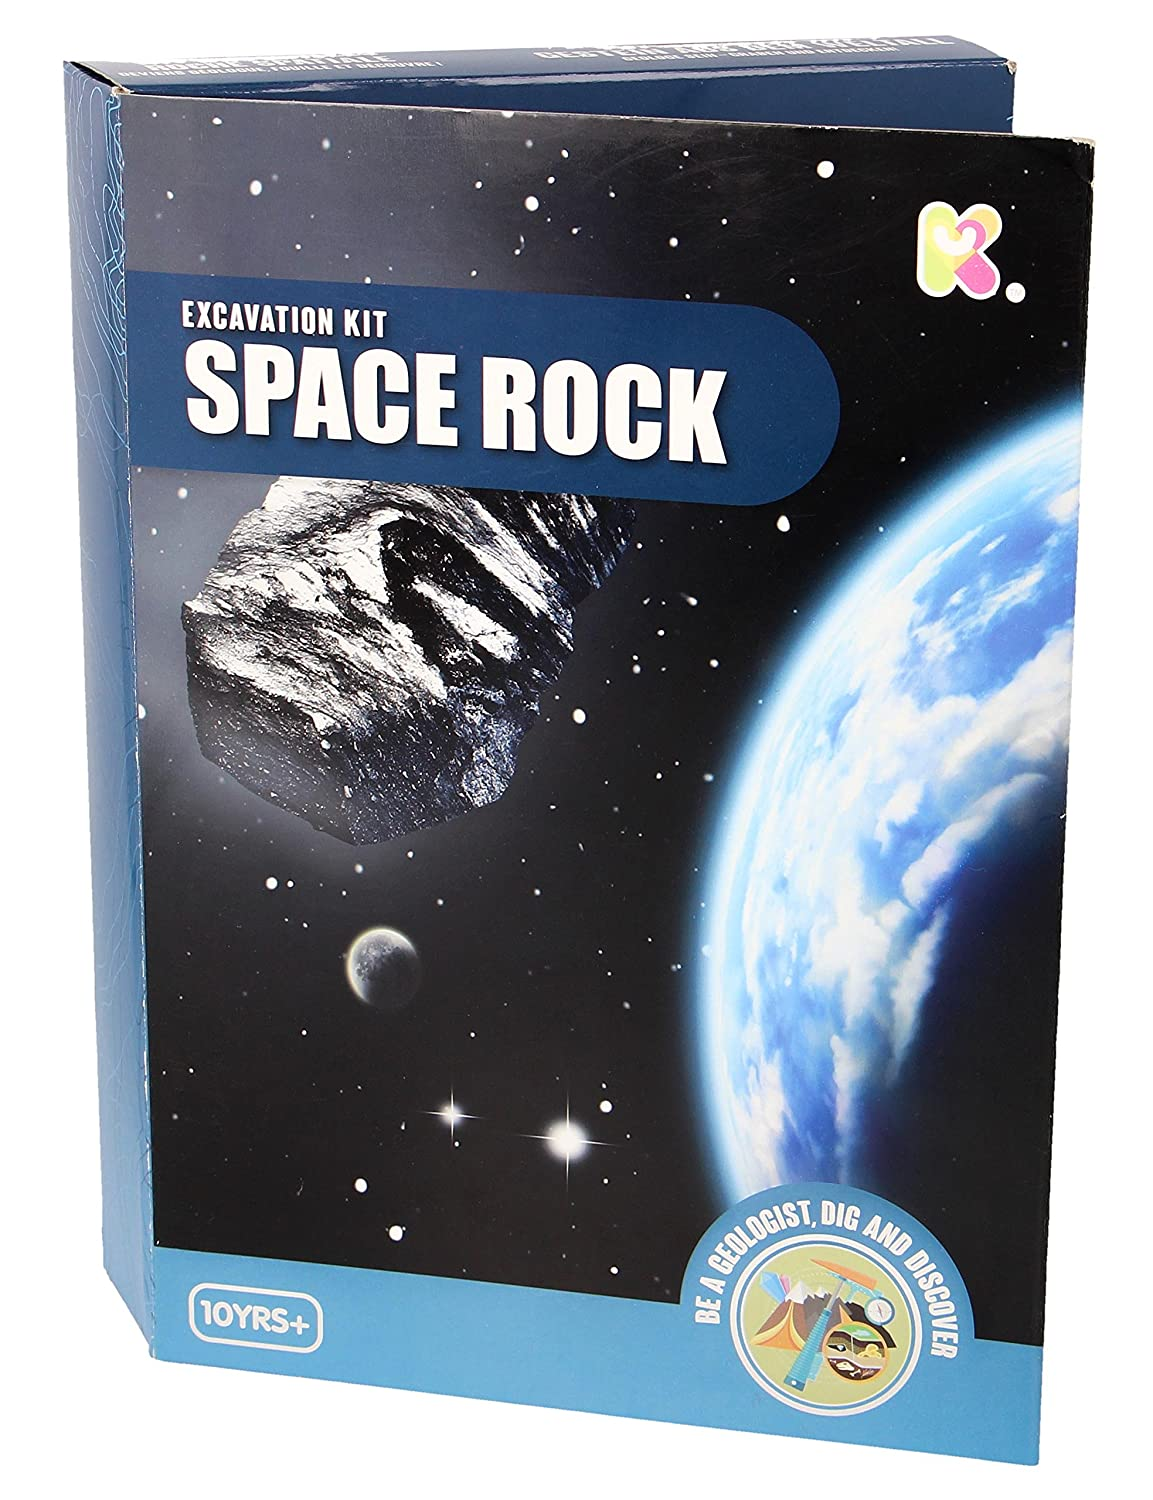 Fun Educational Gift For Boys & Girls - Space Rock Excavation Kit Ages 10+ Kenzies Gifts